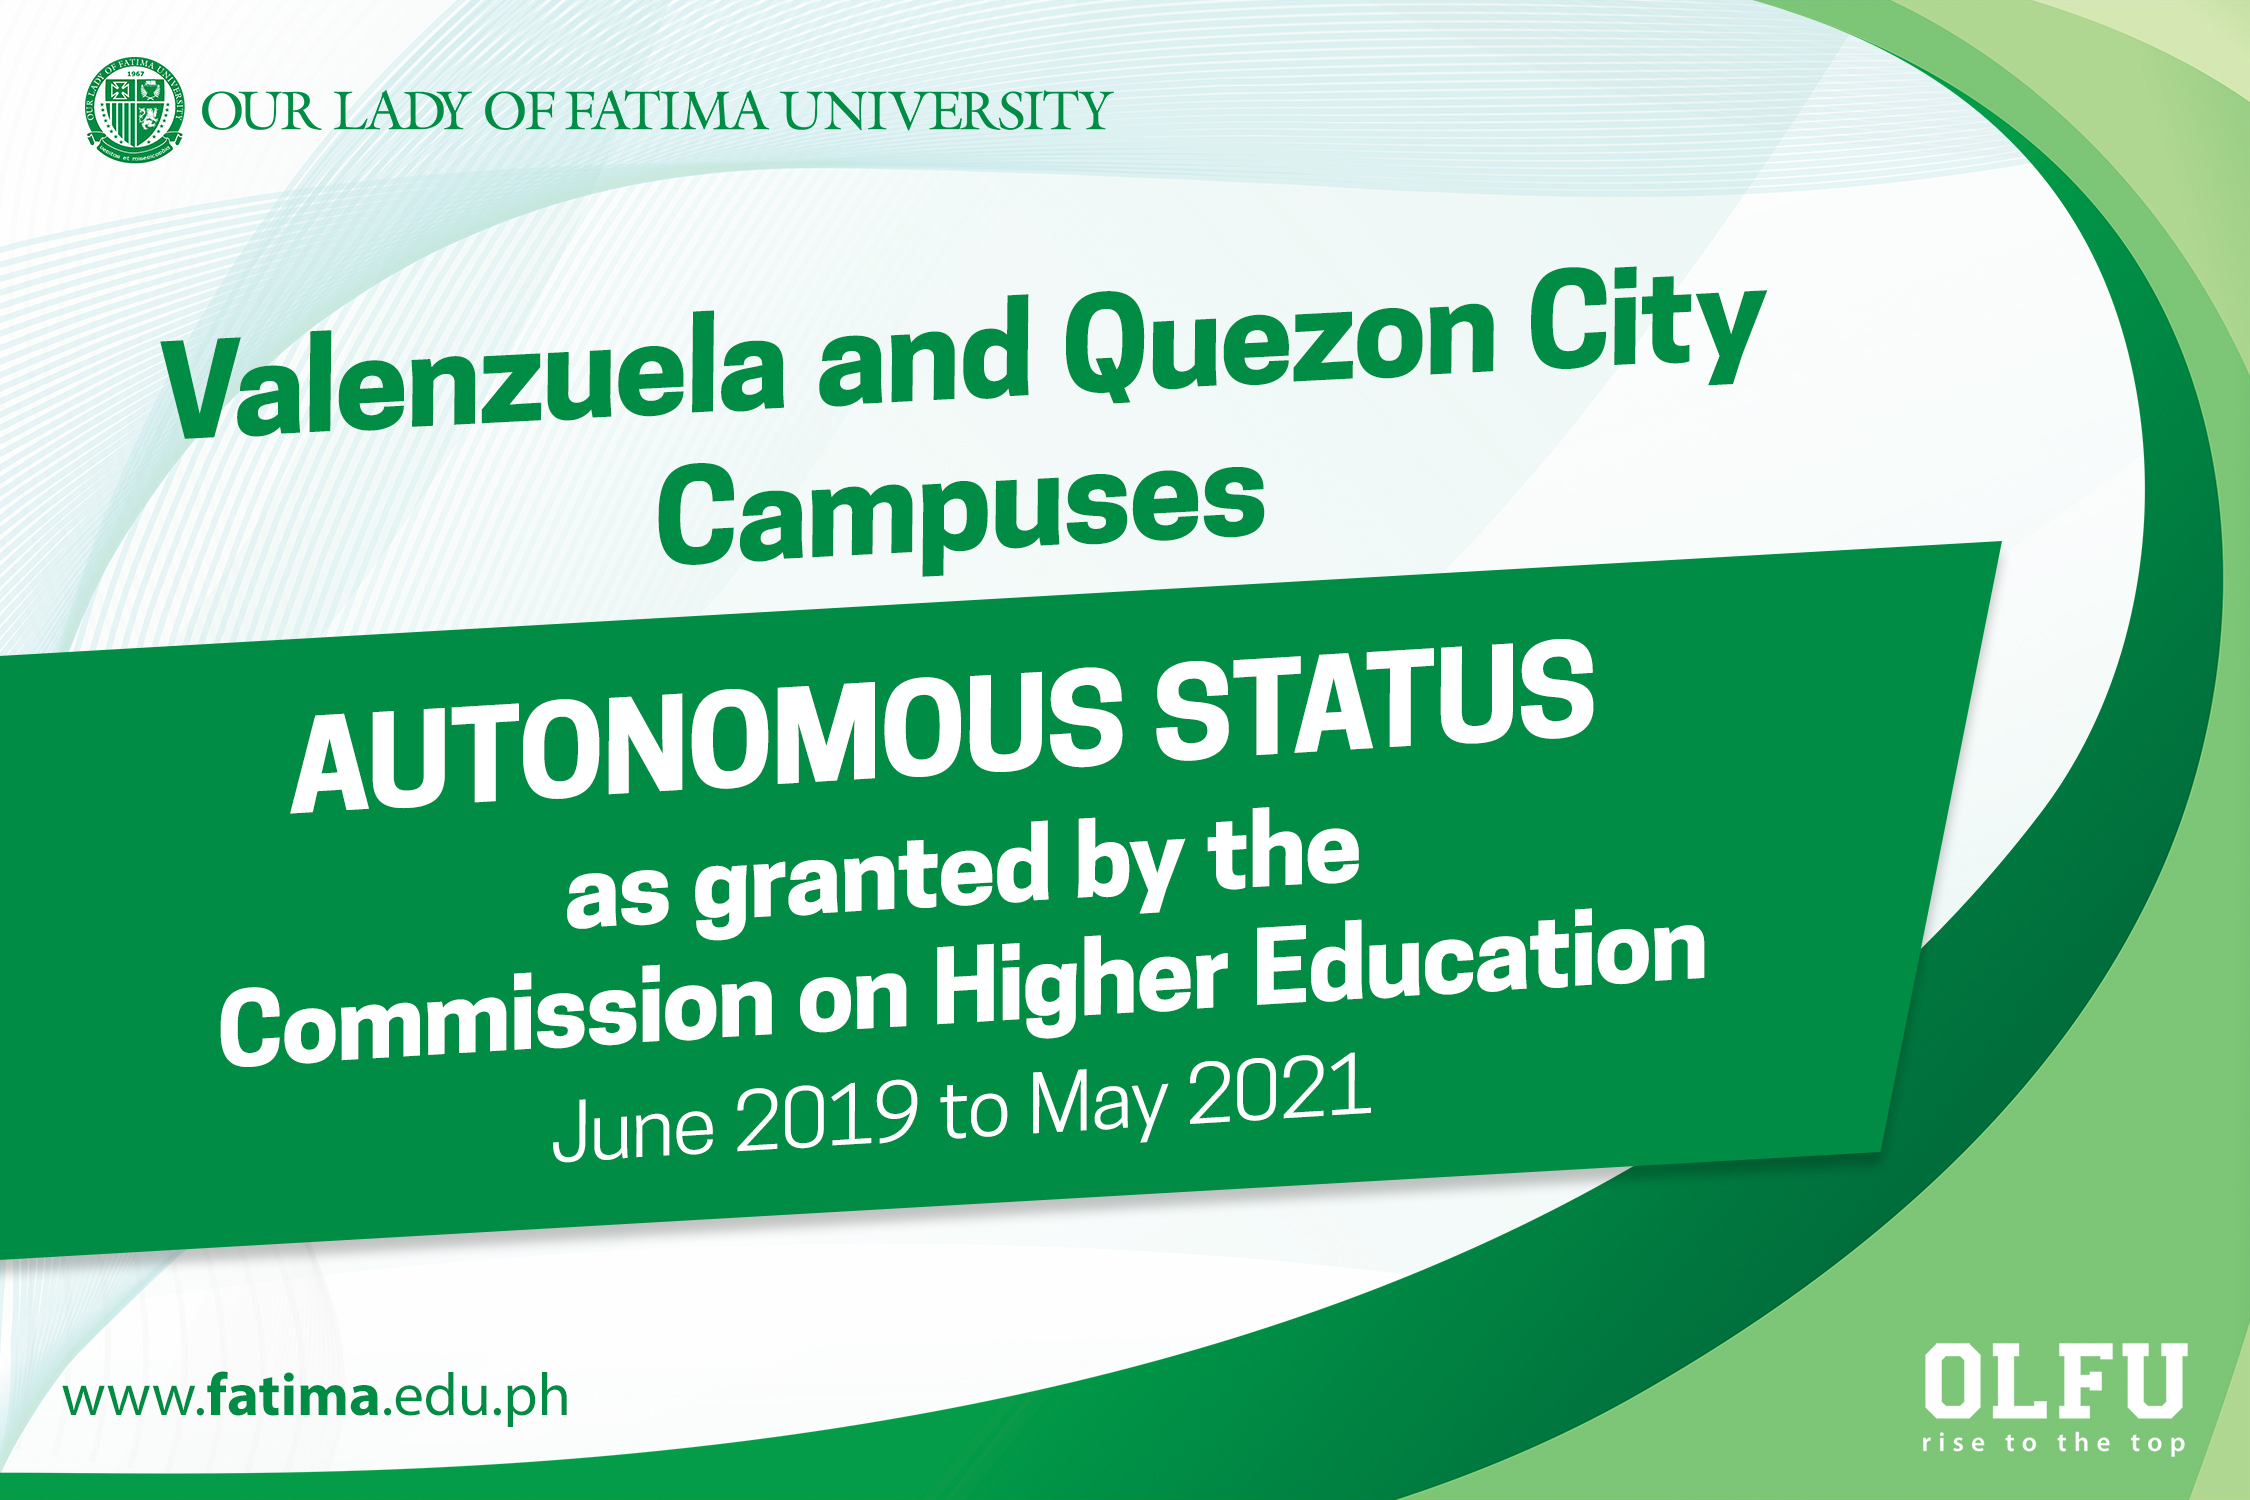 Valenzuela and Quezon City Campuses granted Autonomous Status by CHED